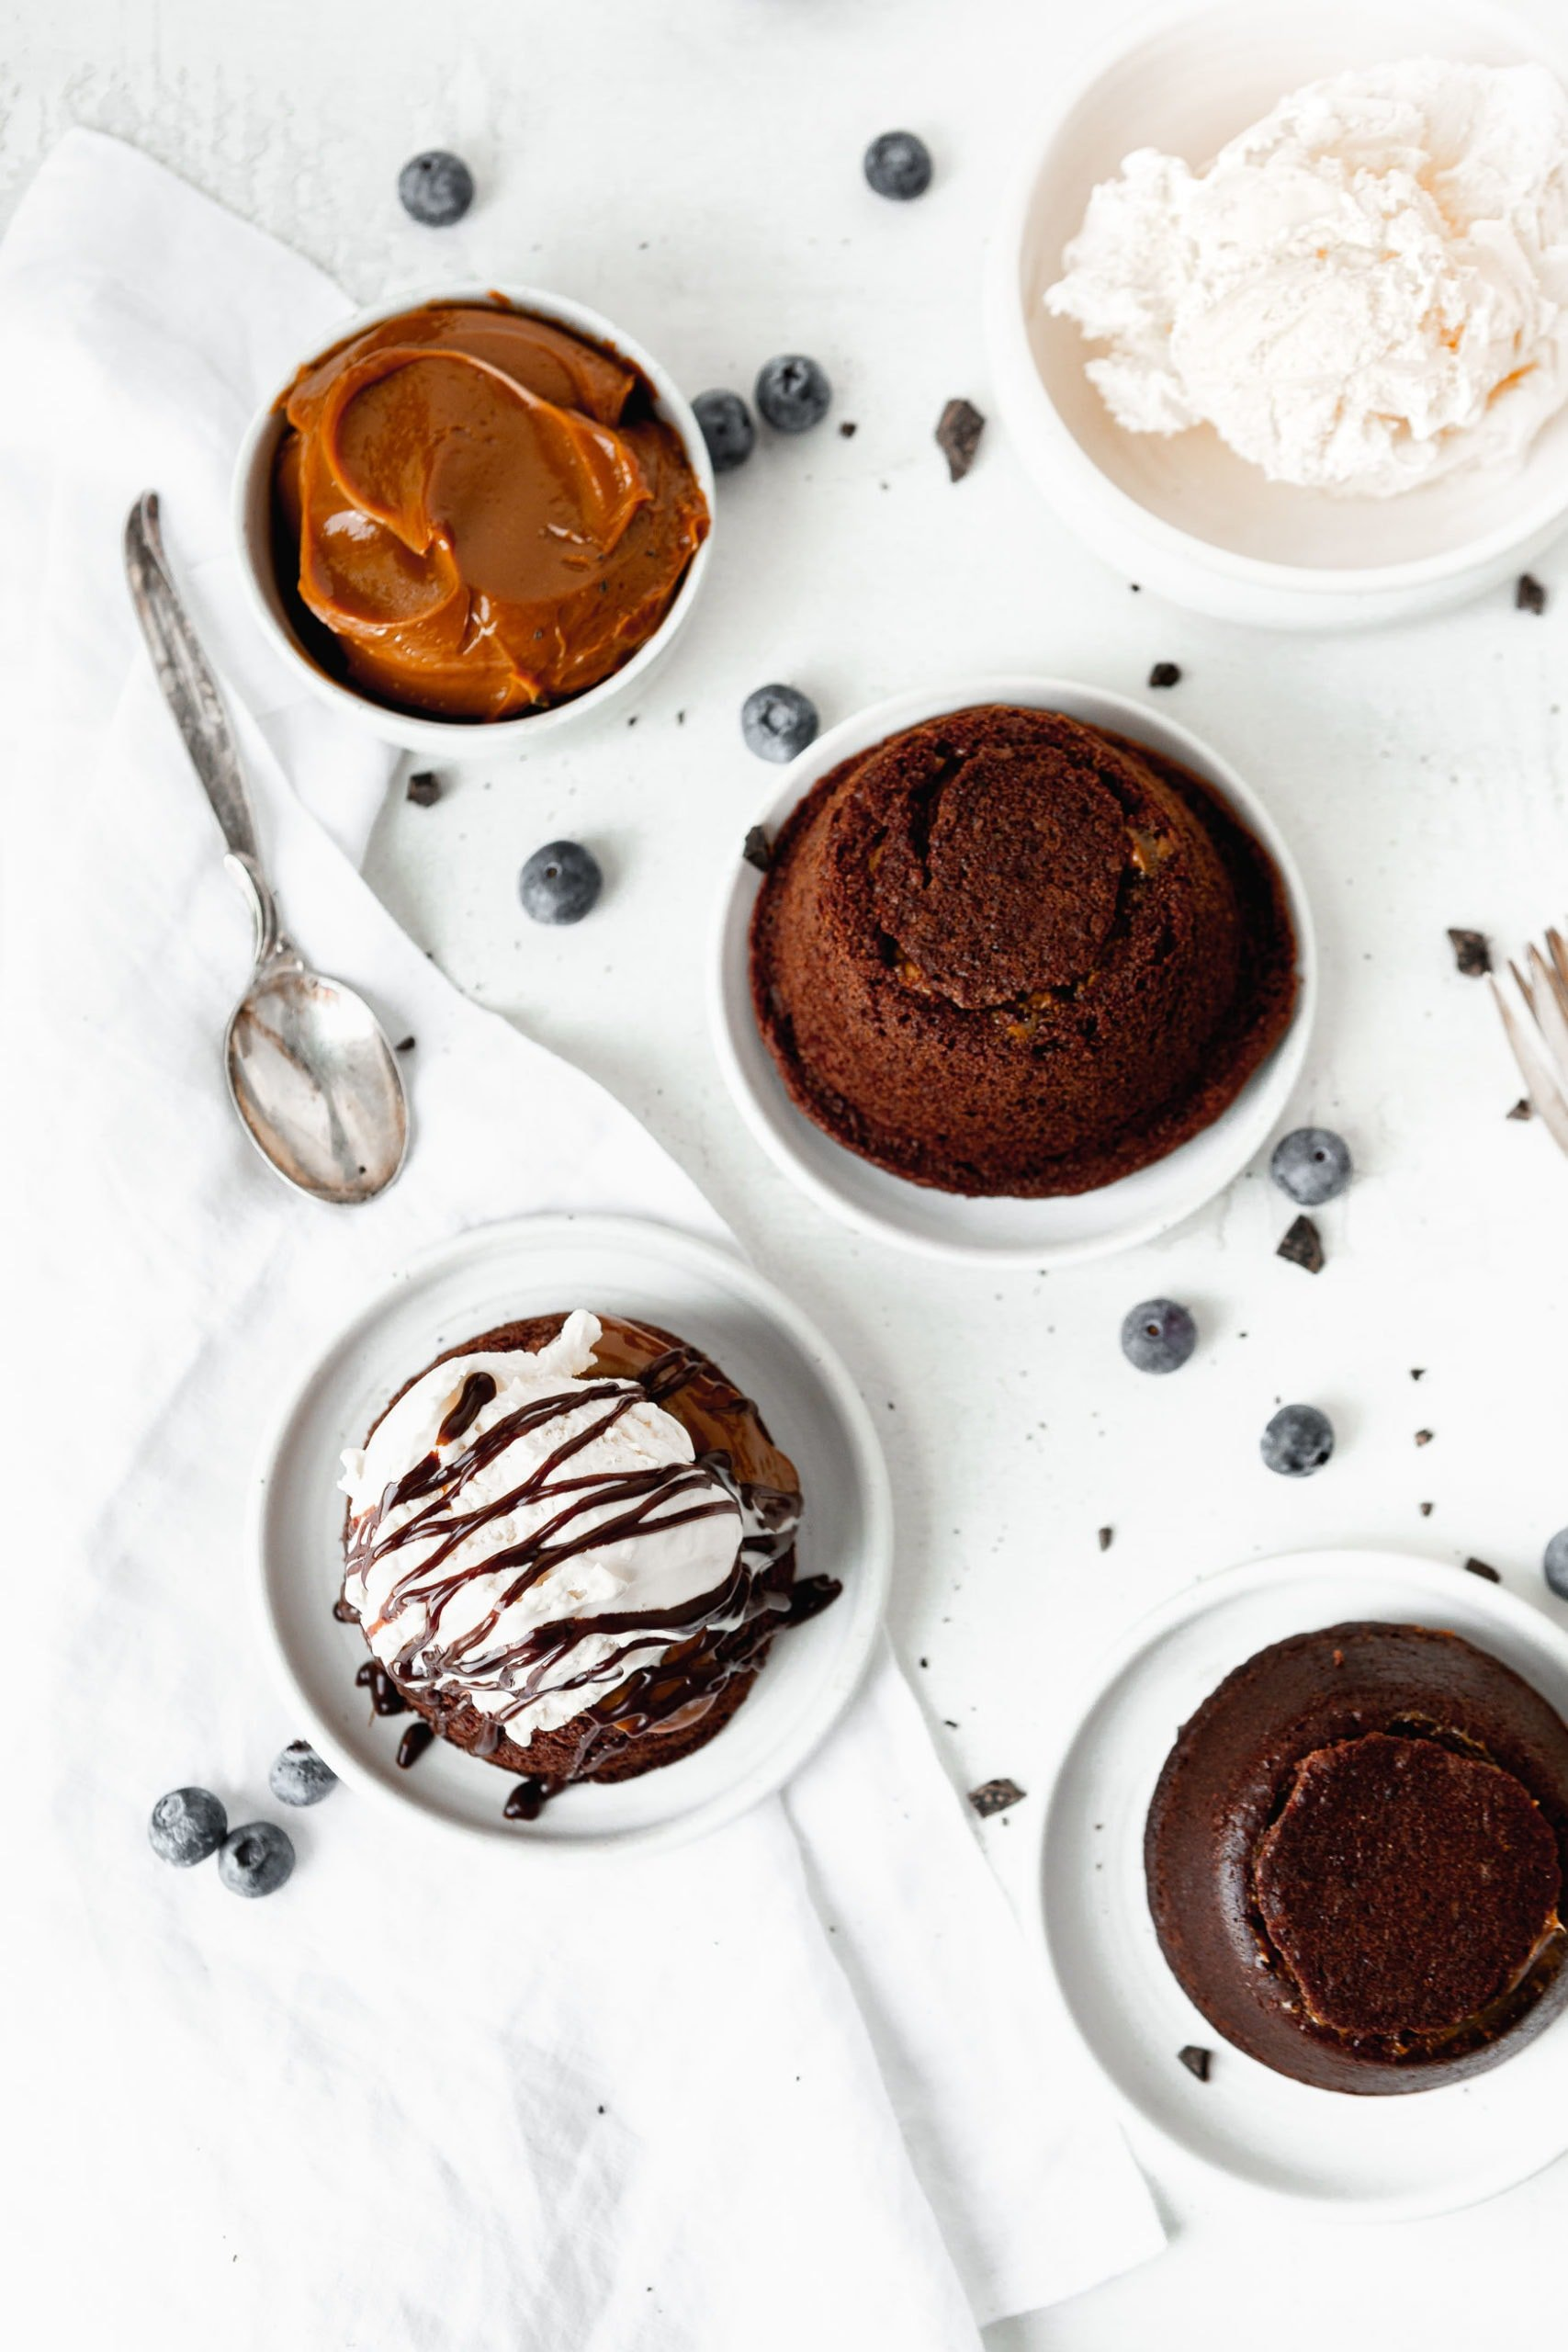 Molten lava cakes on dessert plates. One has been topped with a scoop of ice cream and chocolate drizzles. There are a few blue berries scattered on the table and a spoon is next to a bowl of caramel.